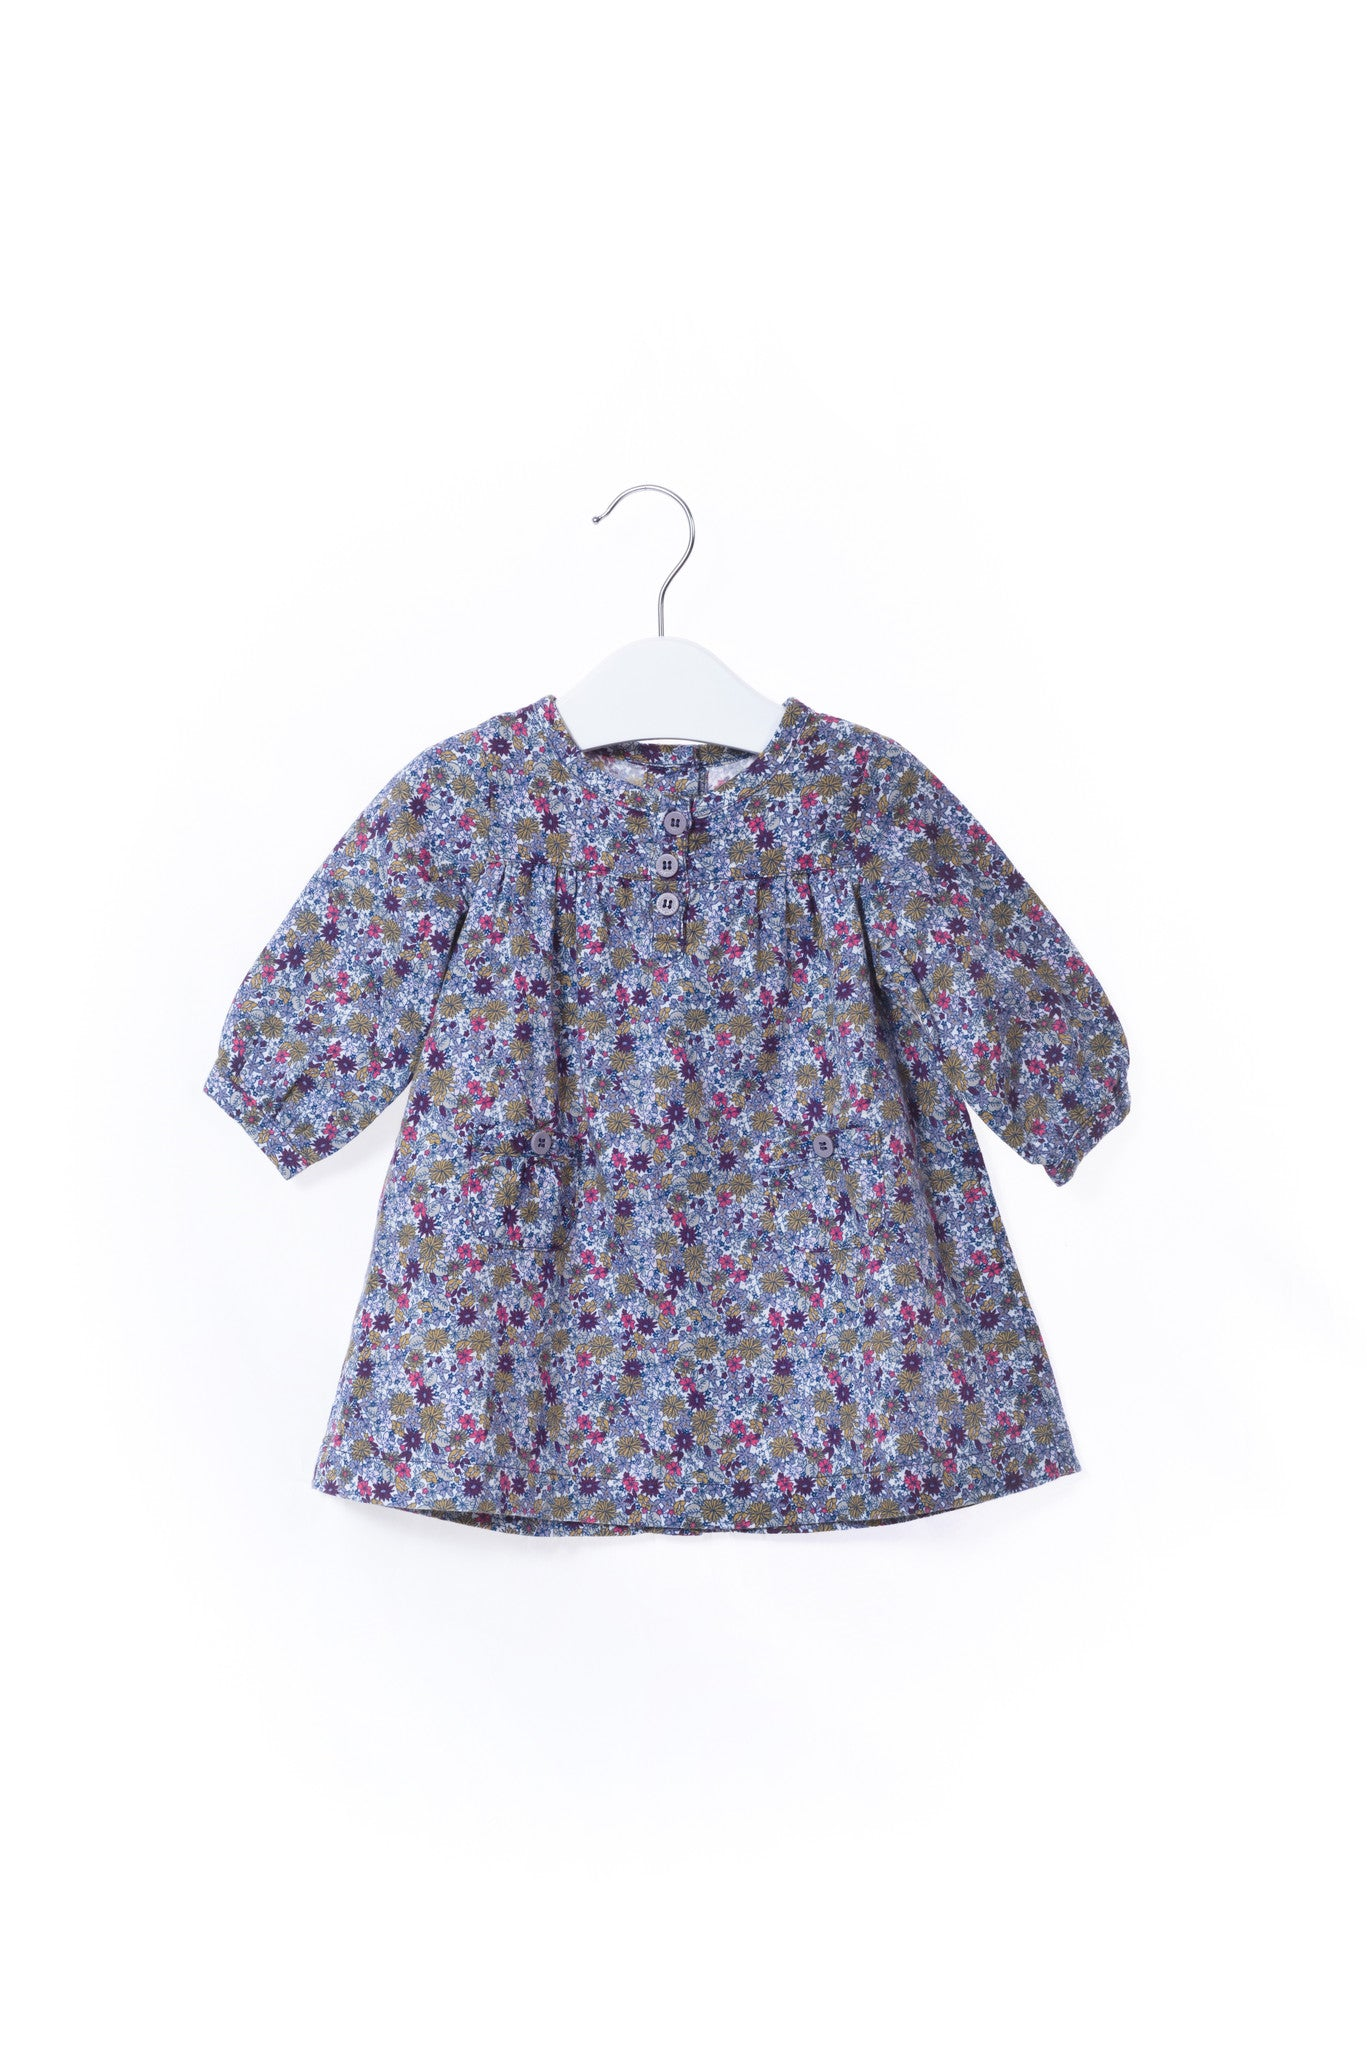 10001003 Petit Bateau Baby~Dress 0-3M at Retykle